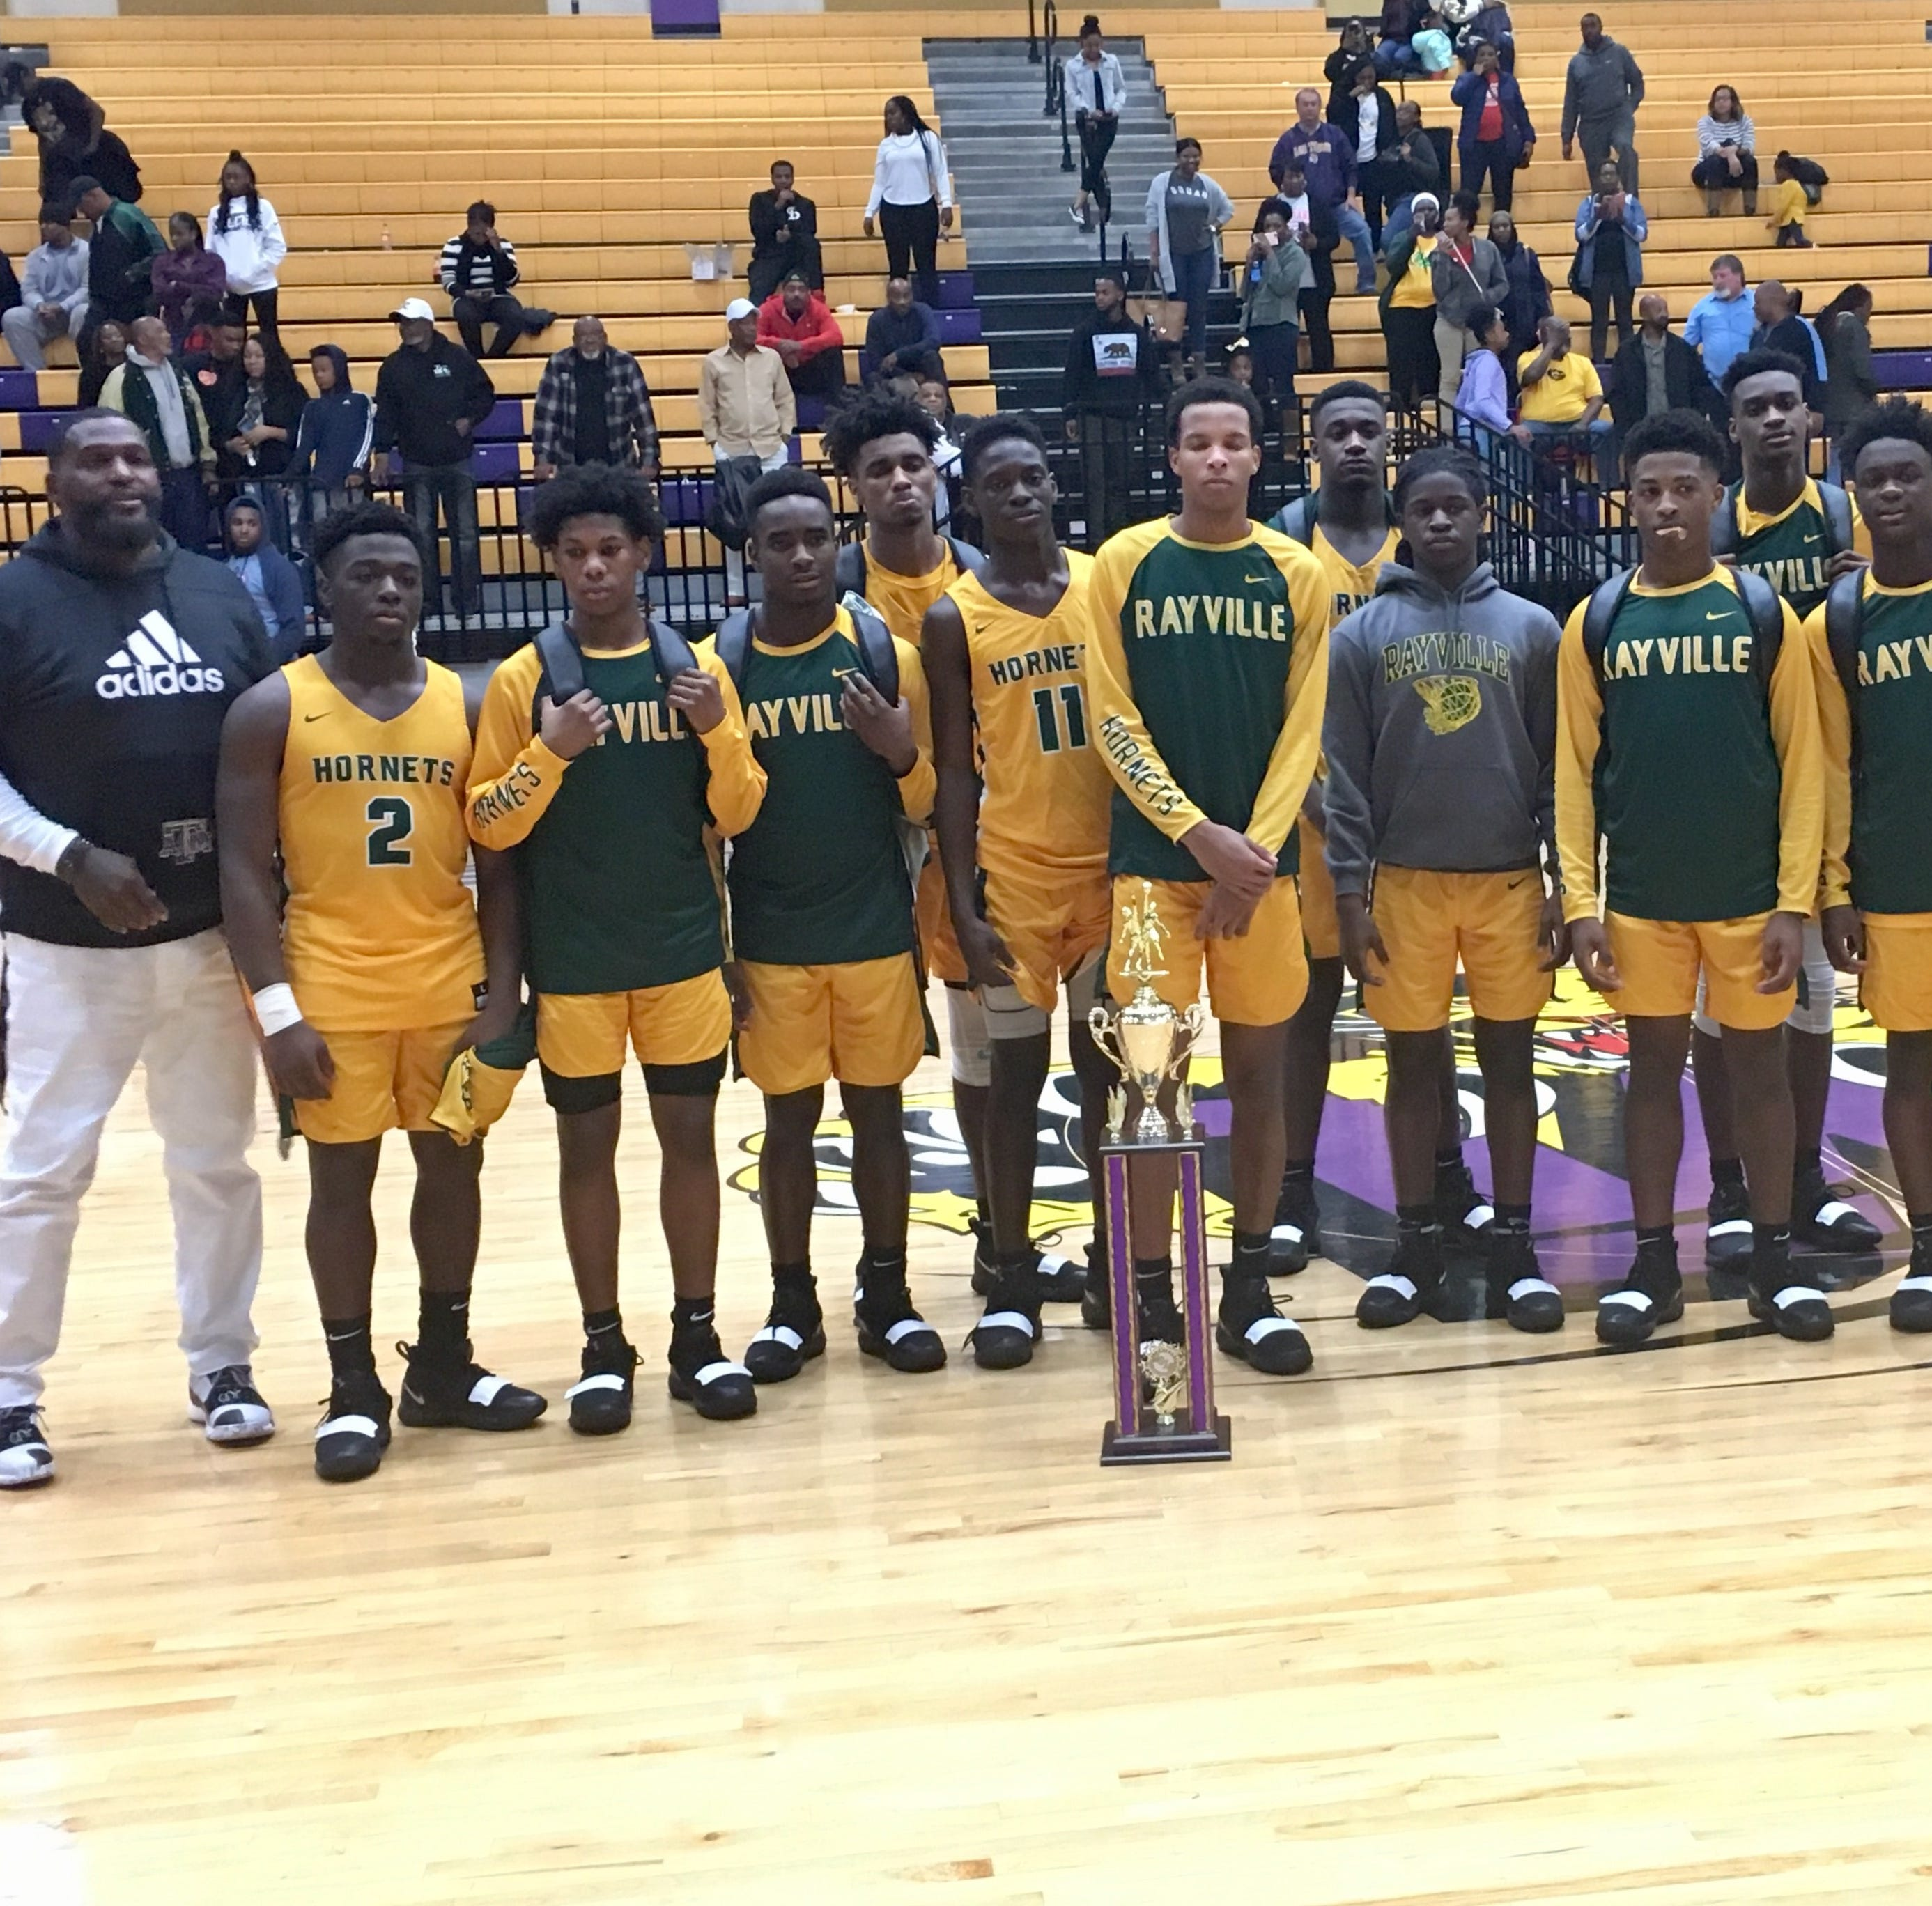 The Rayville Hornets won the the 2018 George Belton/Pat Williams Boys Basketball Classic after their 95-81 victory over the Wossman Wildcats at Wossman's George Belton Sports Complex on Saturday night.